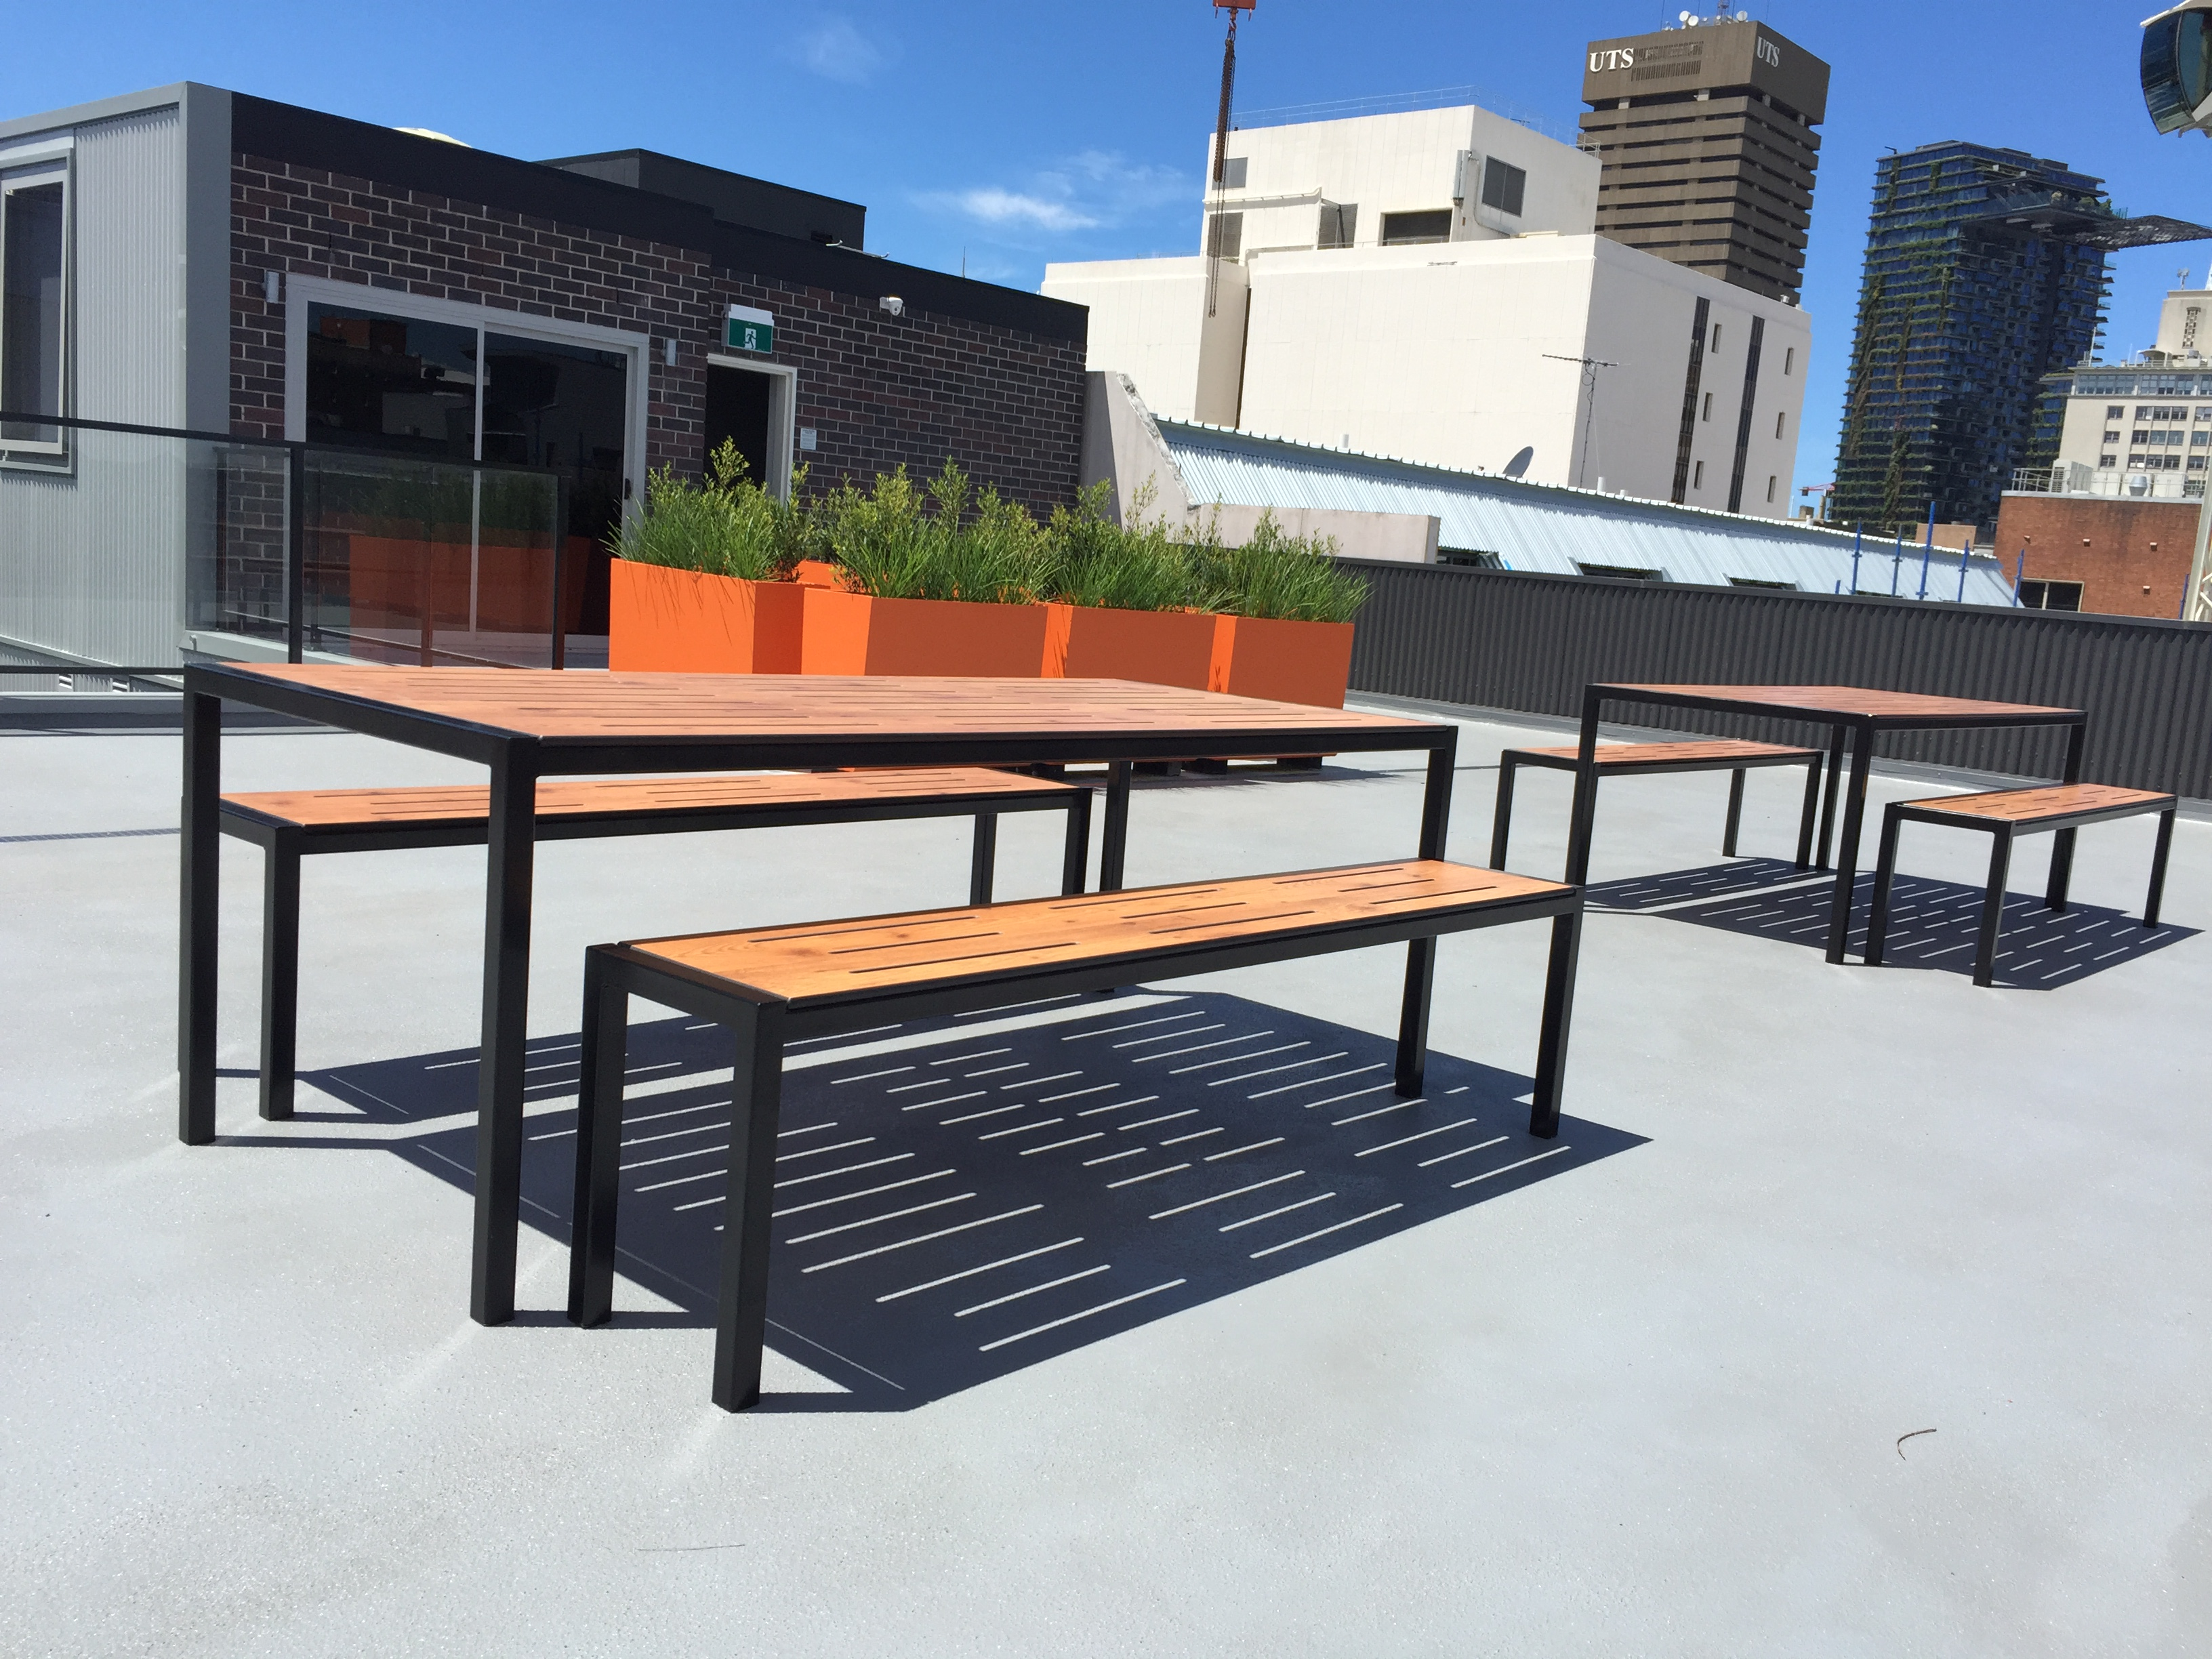 Outdoor Tables 1_Wattle Lane Roof